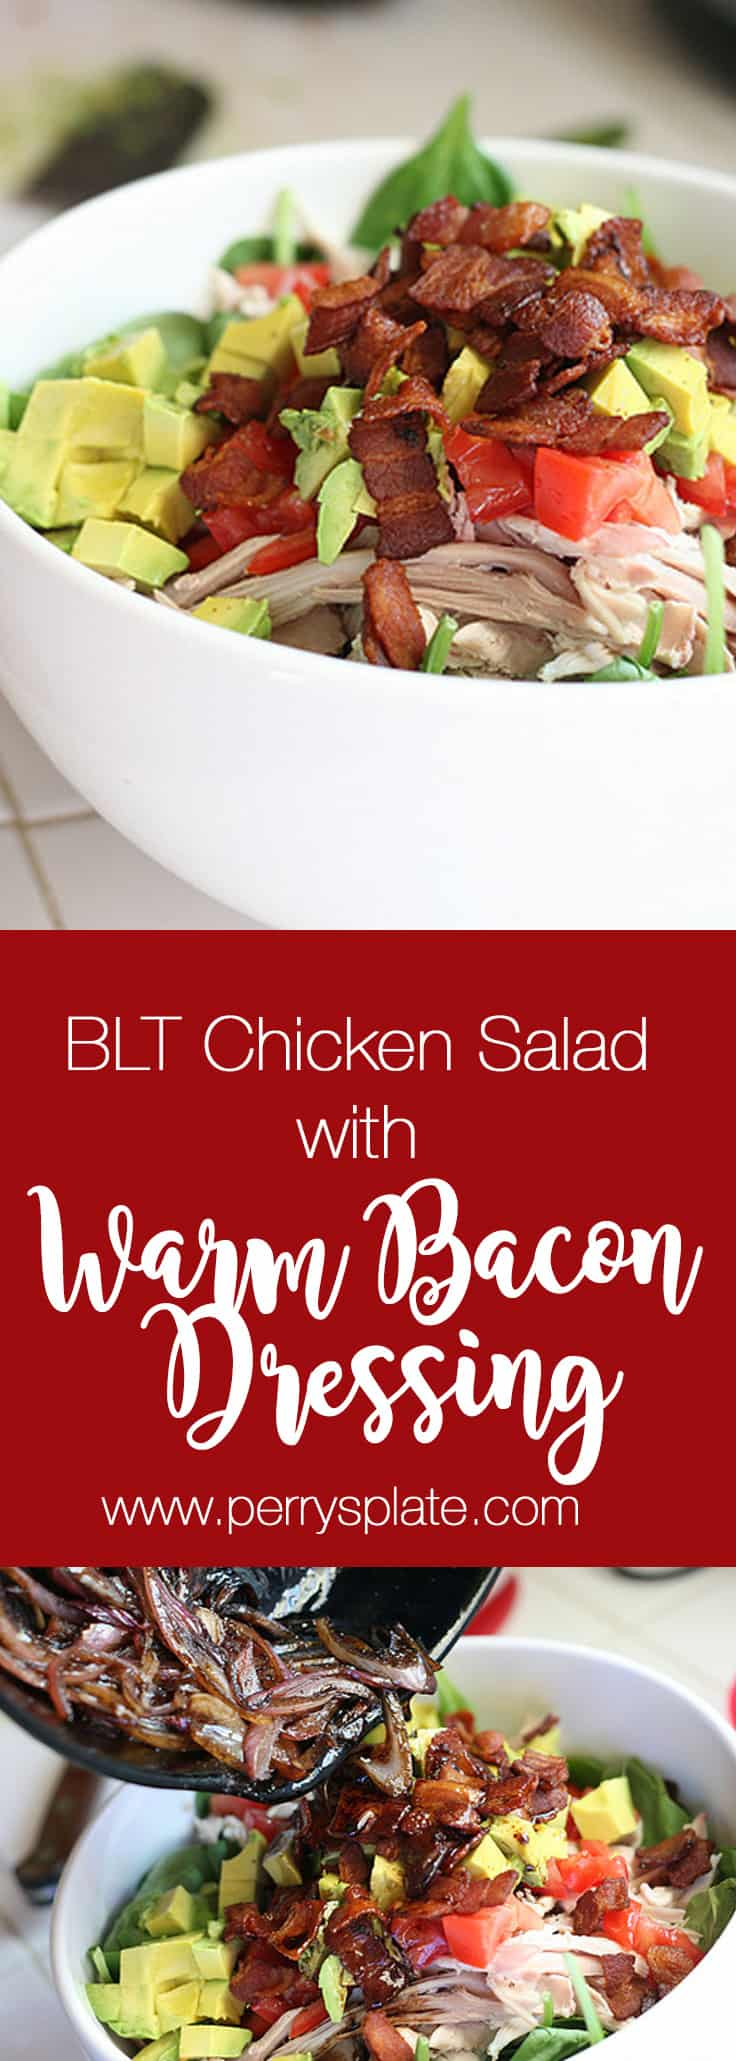 BLT Chicken Salad with Warm Bacon Dressing | paleo recipes | salad recipes | BLT dressing | bacon dressing | perrysplate.com